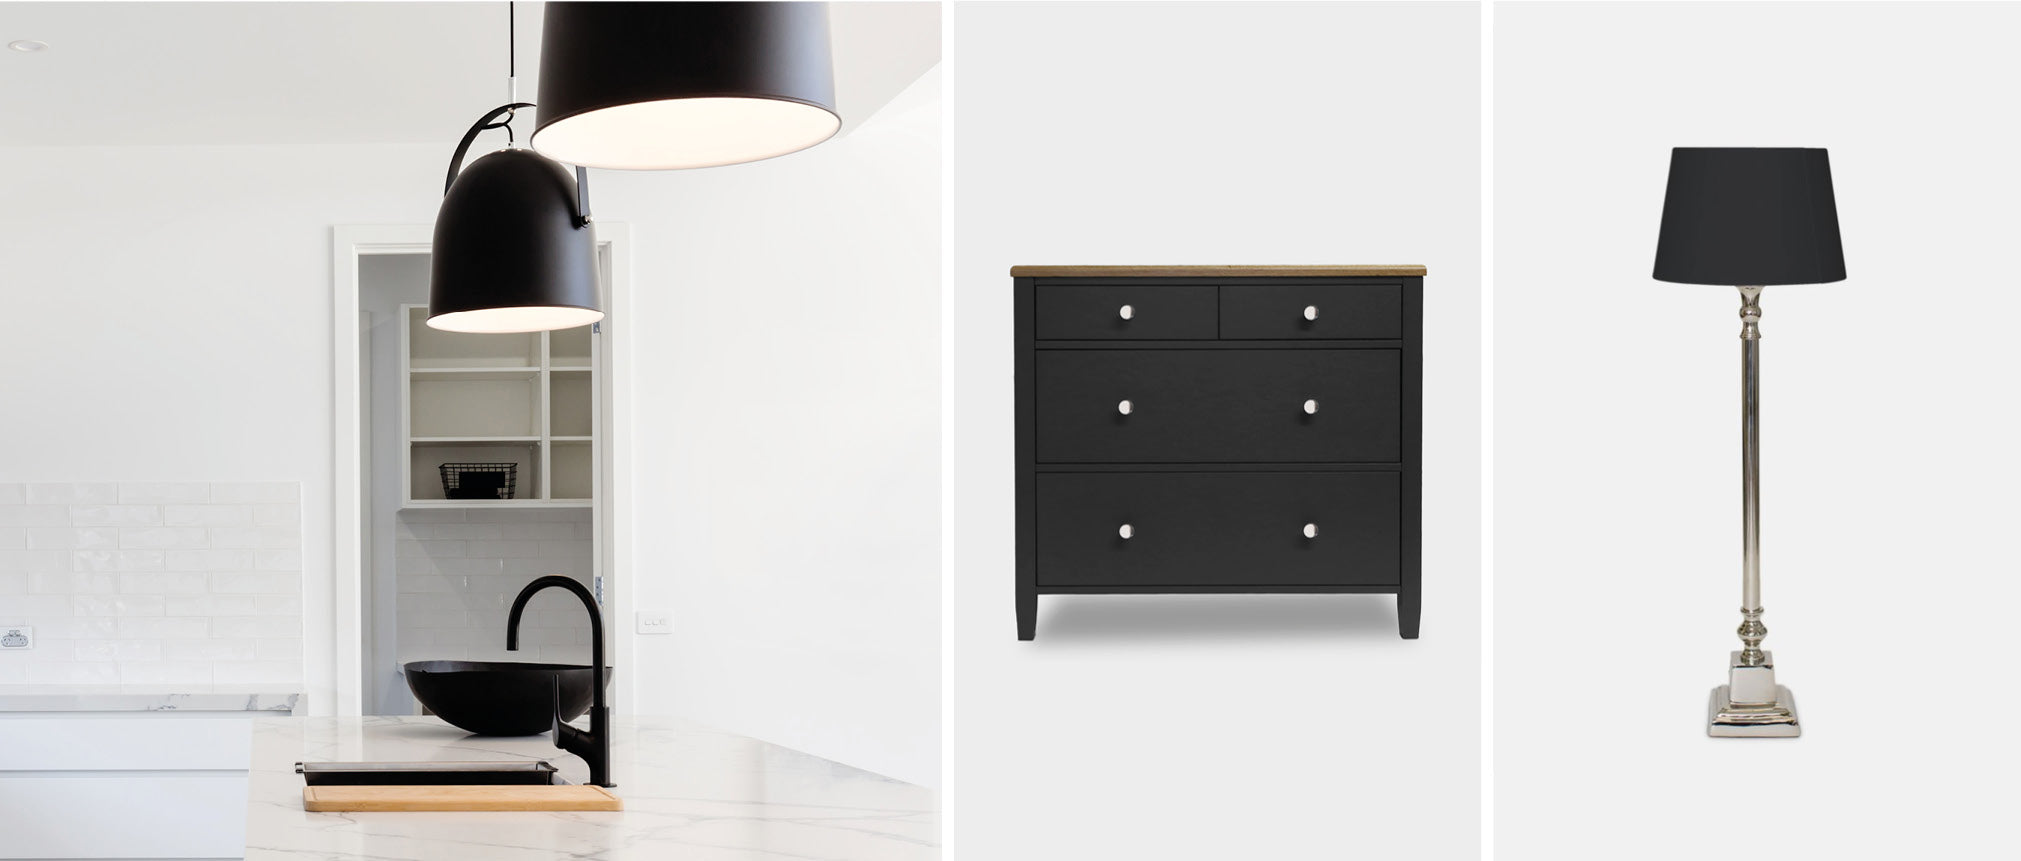 Monochrome wardrobe and table lamp in charcoal